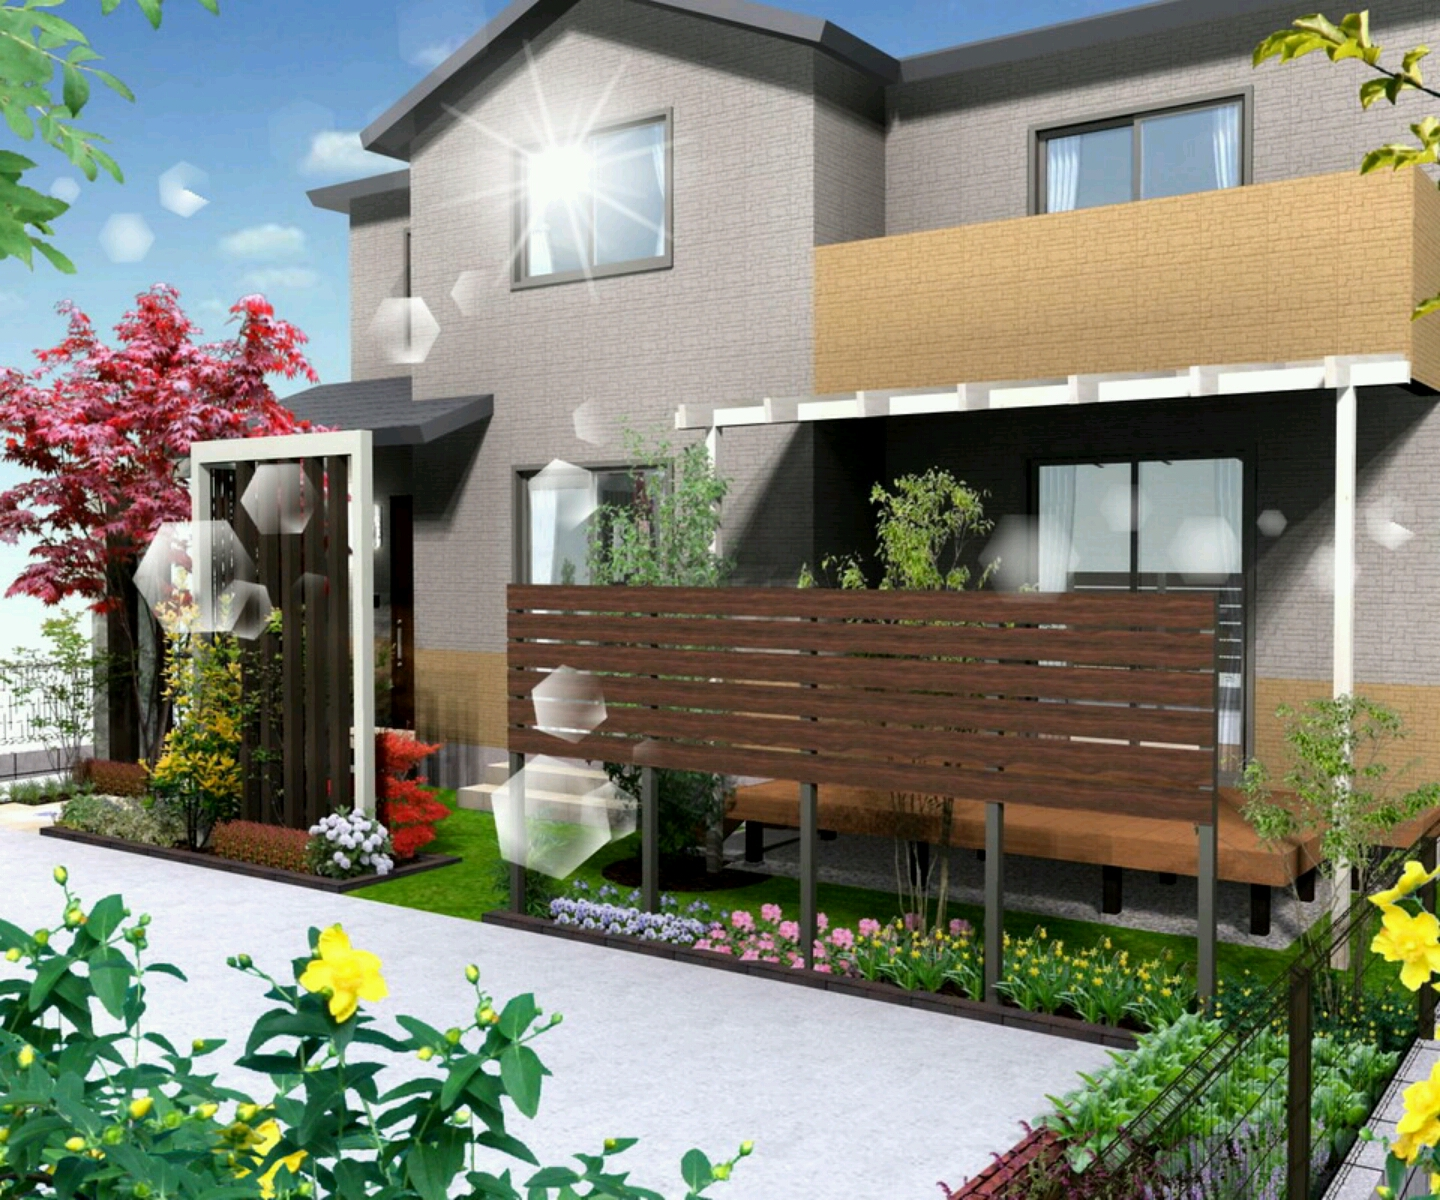 Home Designs October 2012: Modern Luxury Homes Beautiful Garden Designs Ideas